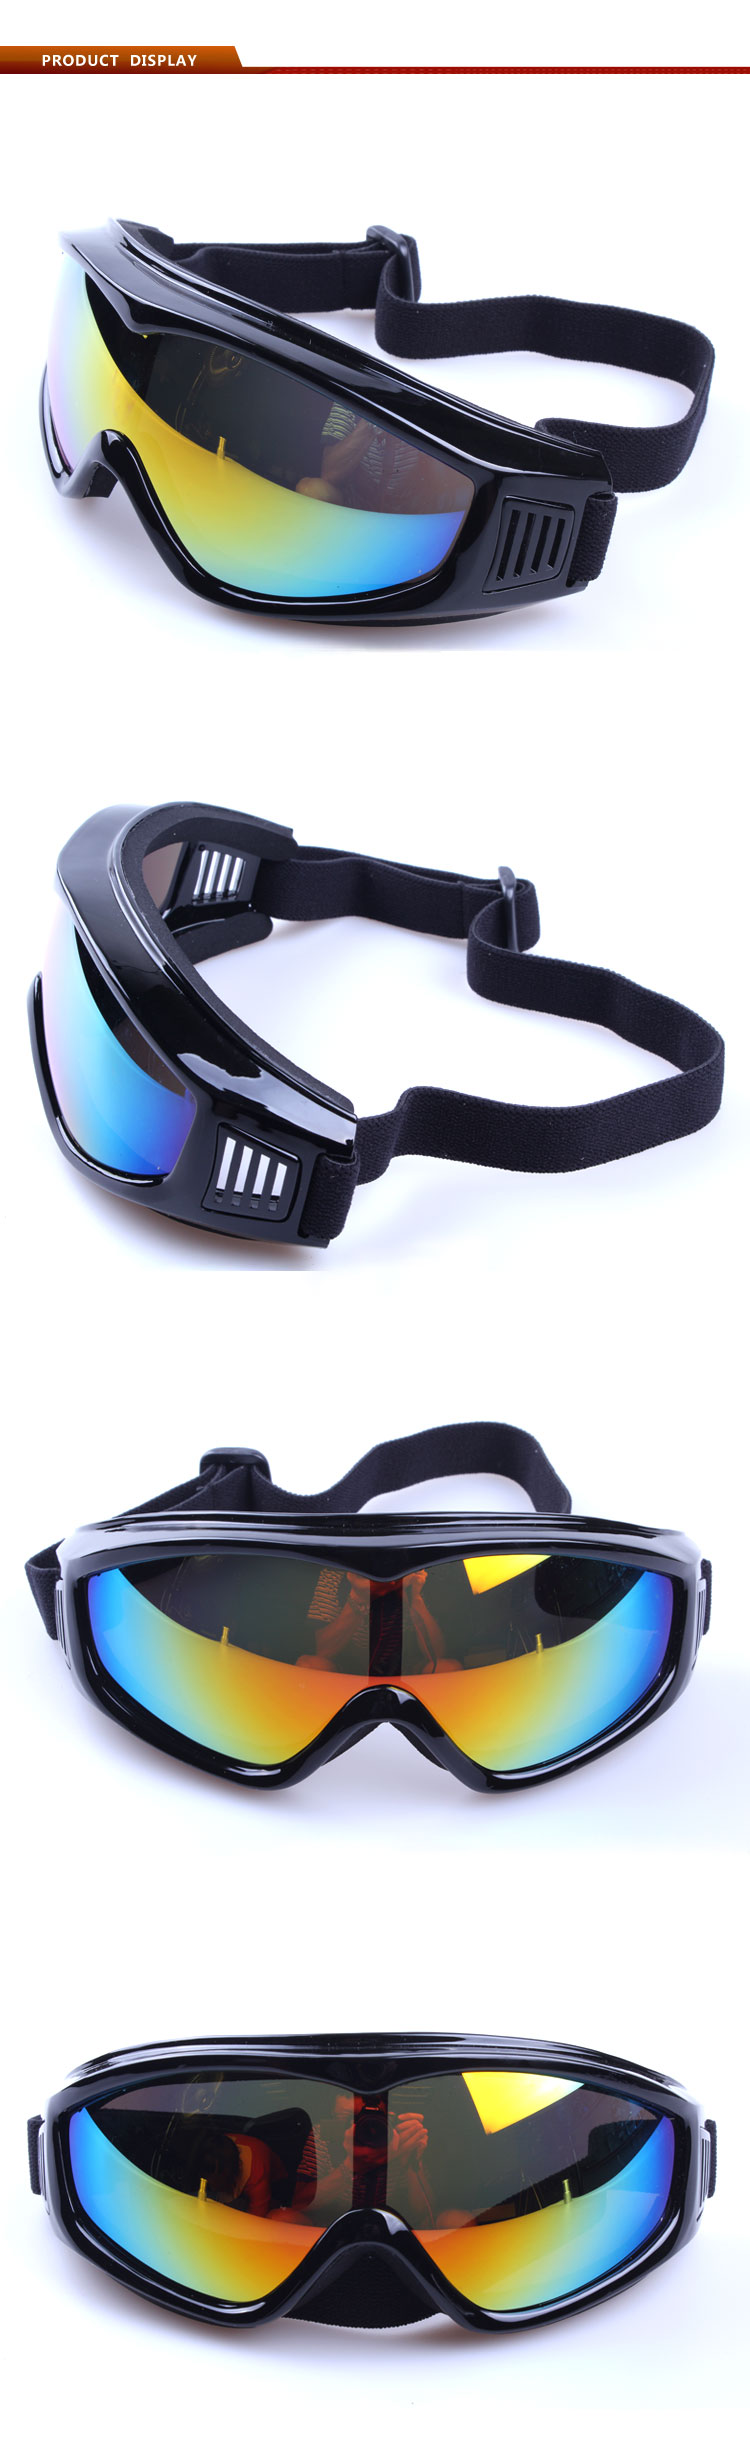 motorcycle glasses goggles mens eyeglasses anti glare UV400